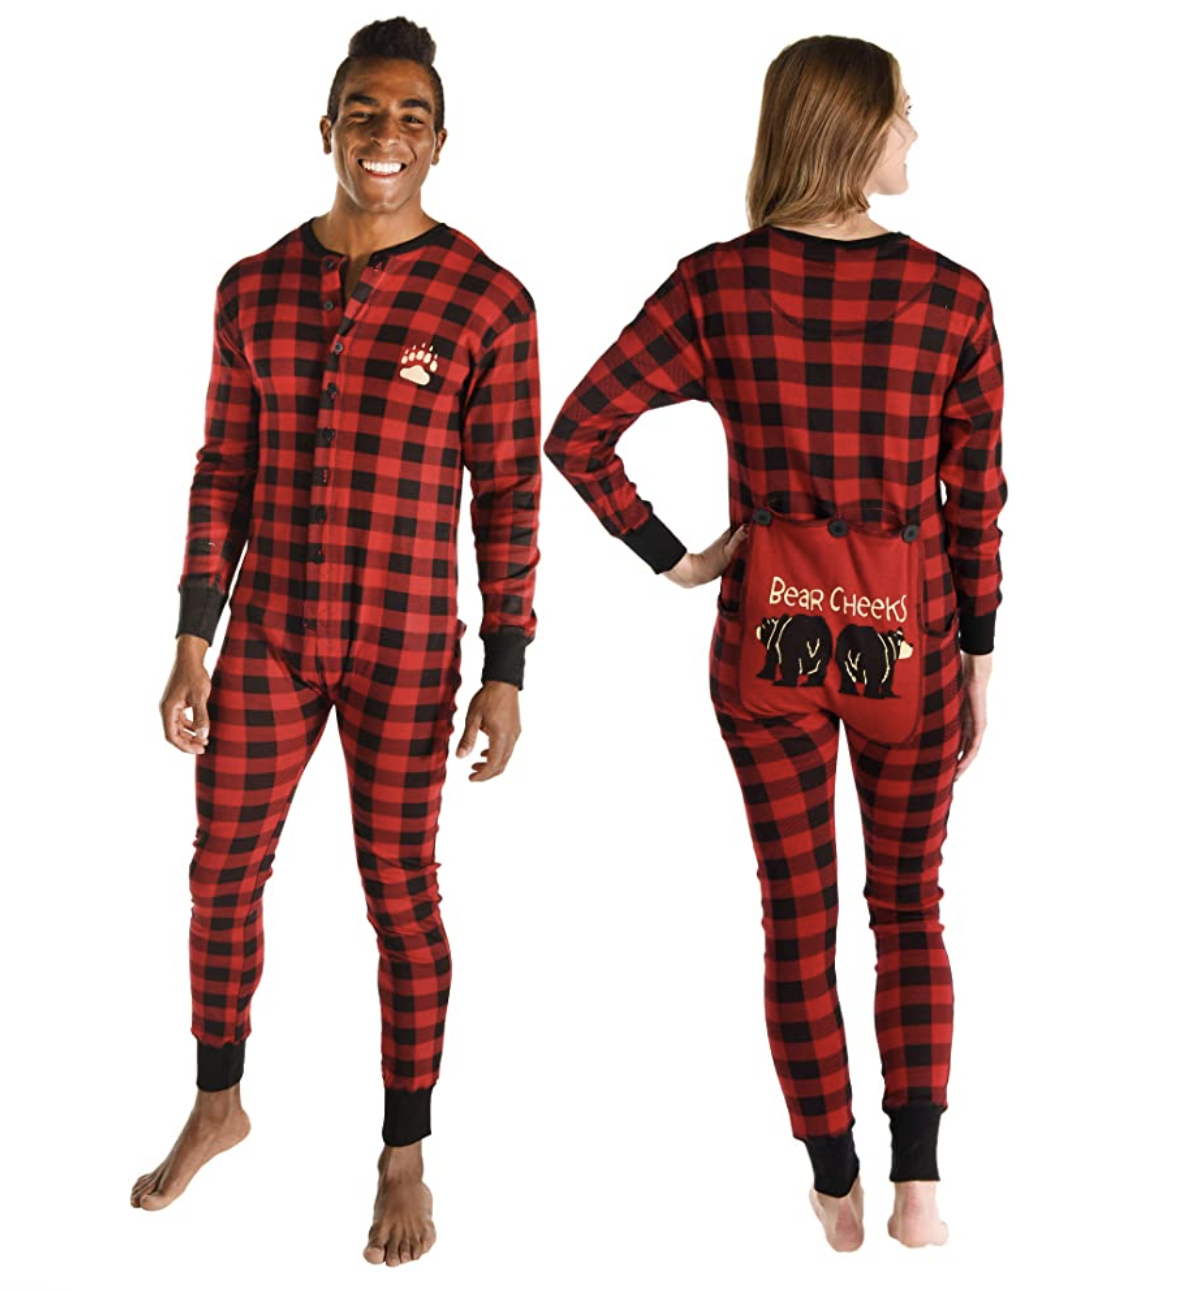 his-and-hers-gifts-pjs